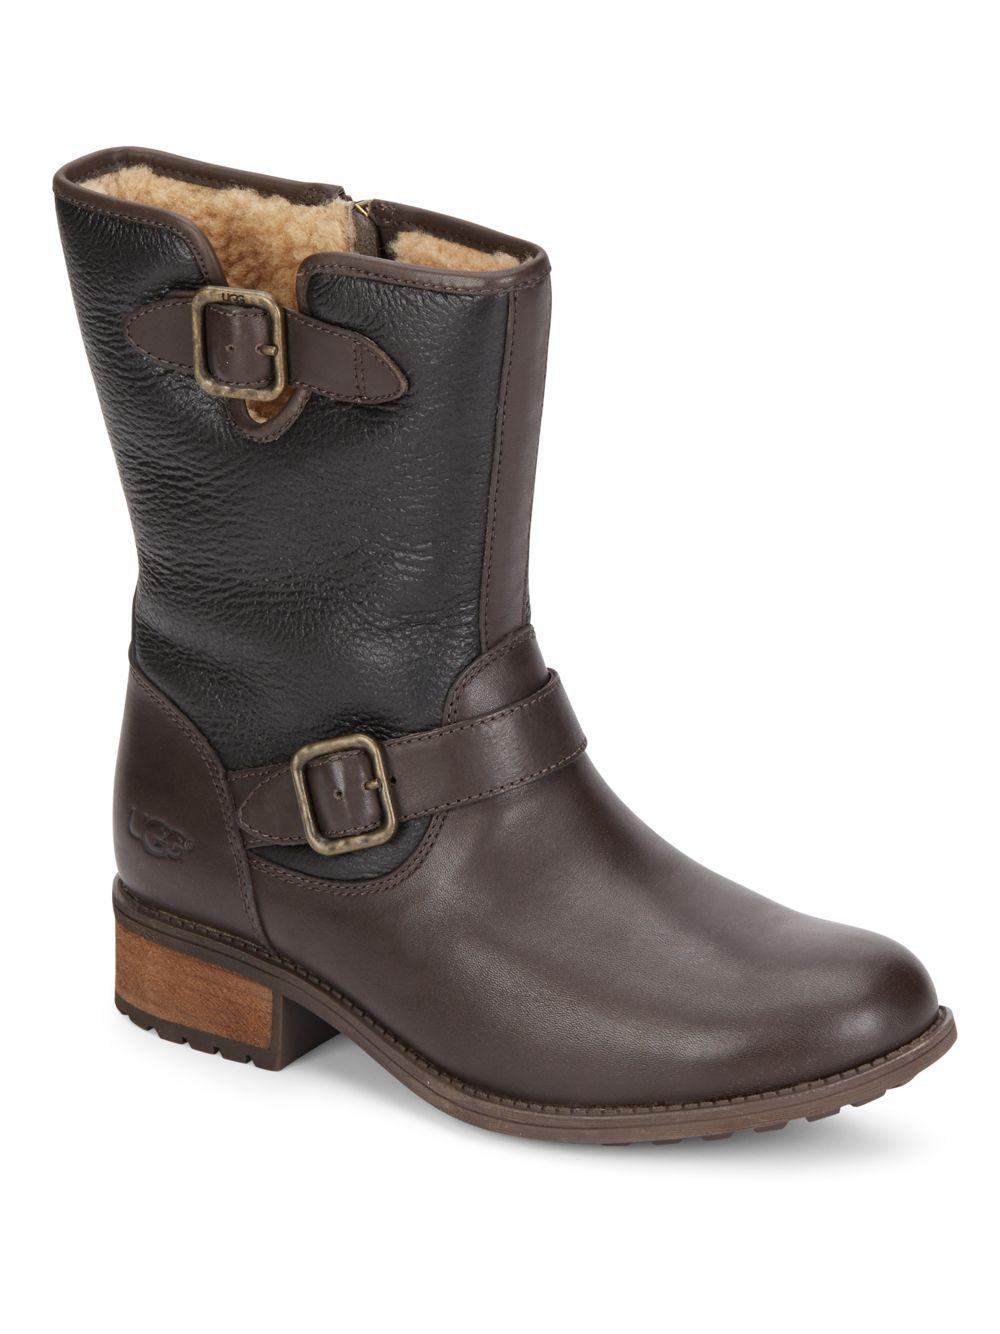 7fd0f1bbc34 Lyst - UGG Chaney Shearling-lined Leather Boots in Brown